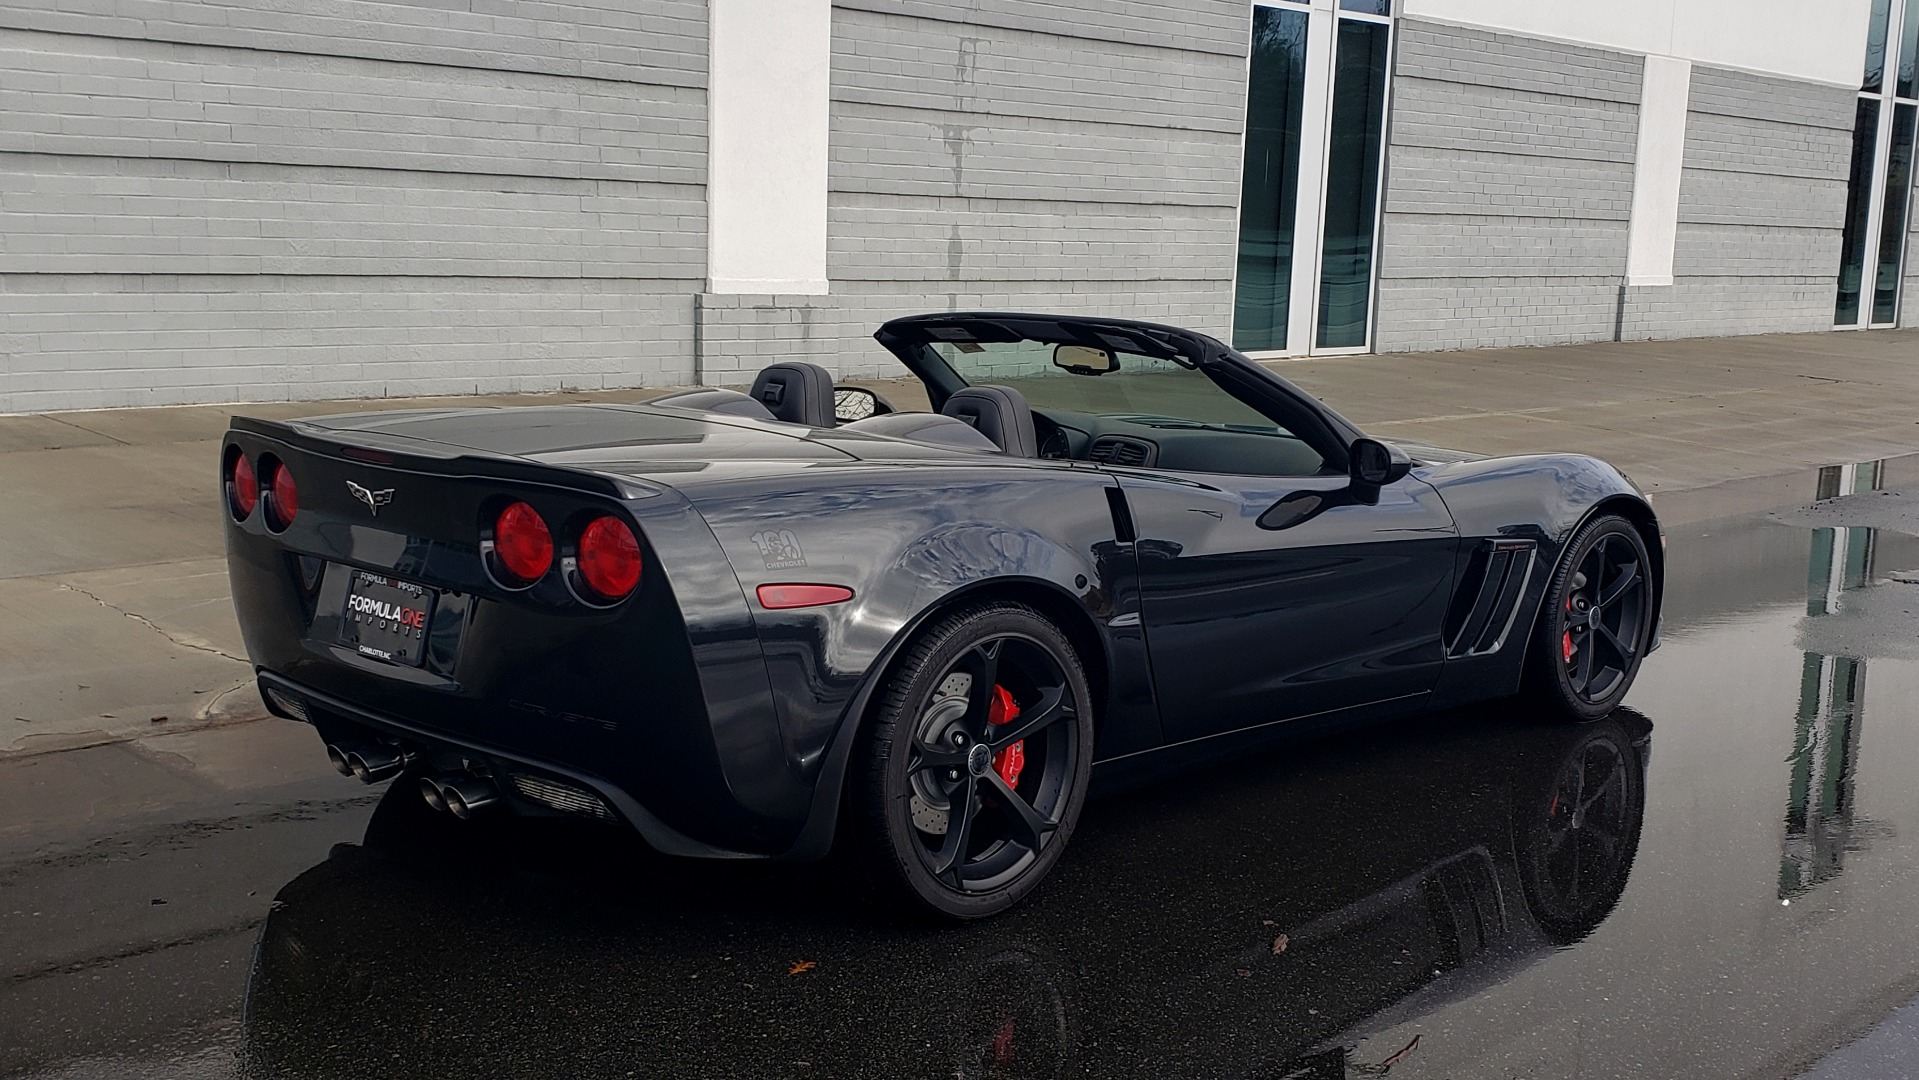 Used 2012 Chevrolet CORVETTE Z16 GRAND SPORT 3LT CONVERTIBLE / 6-SPD AUTO / NAV for sale Sold at Formula Imports in Charlotte NC 28227 8